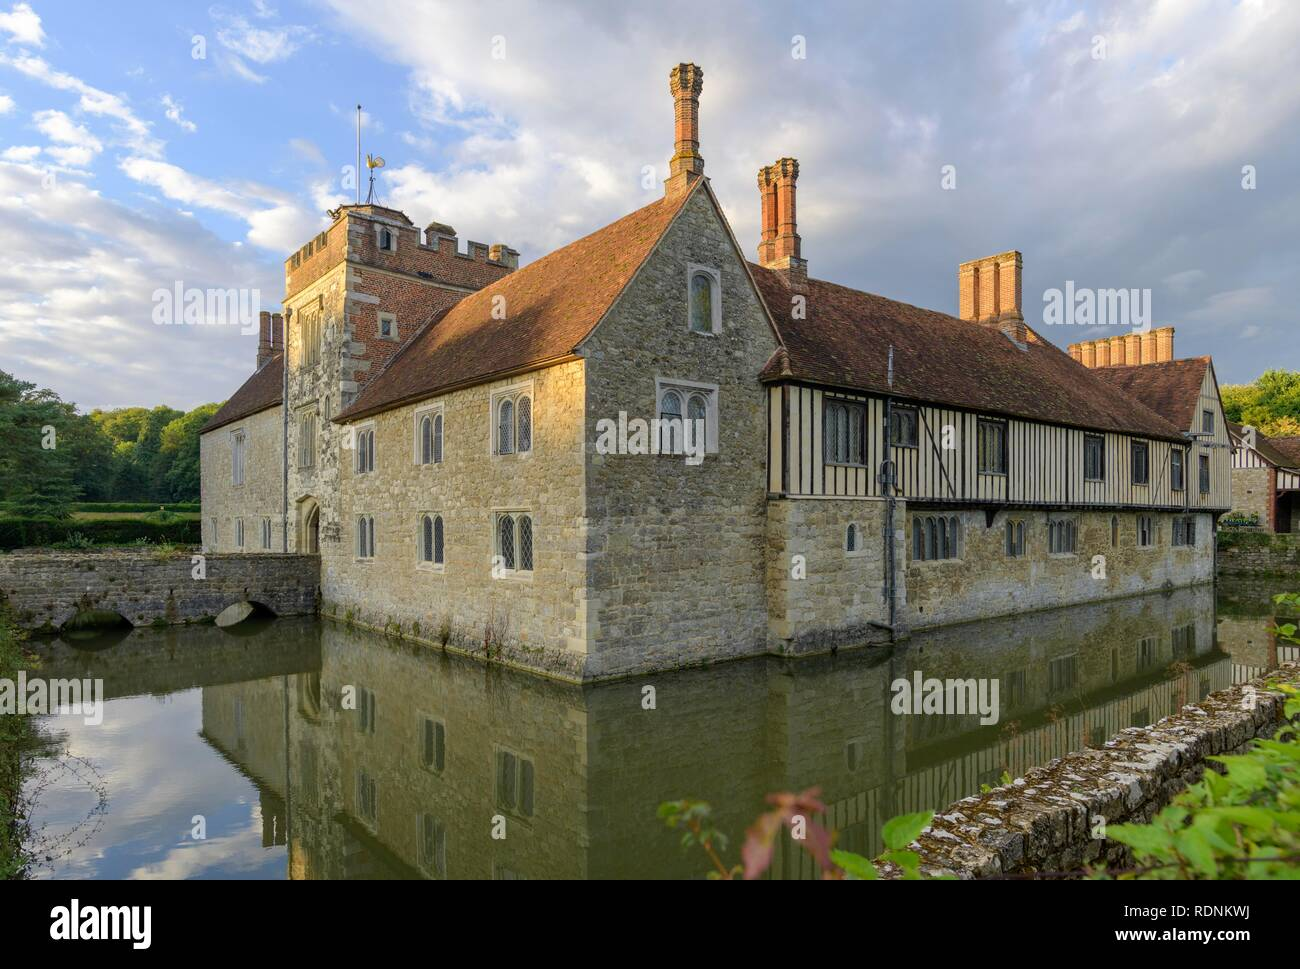 Moated Castle Ightham Mote, Tonbridge and Malling, England, United Kingdom - Stock Image